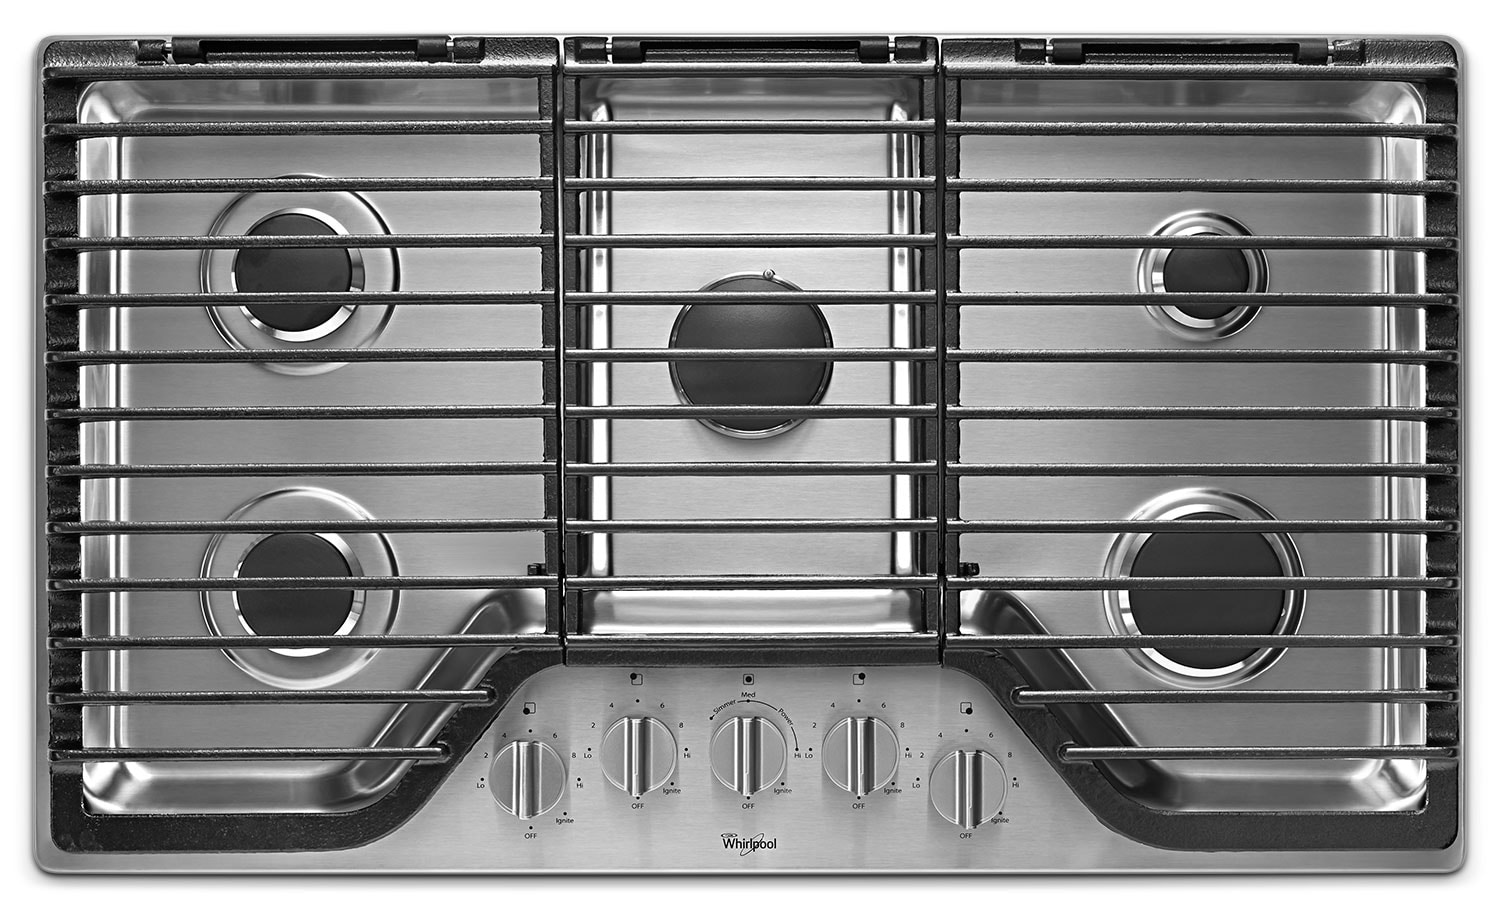 whirlpool stainless steel 36 gas cooktop wcg97us6ds leon 39 s. Black Bedroom Furniture Sets. Home Design Ideas